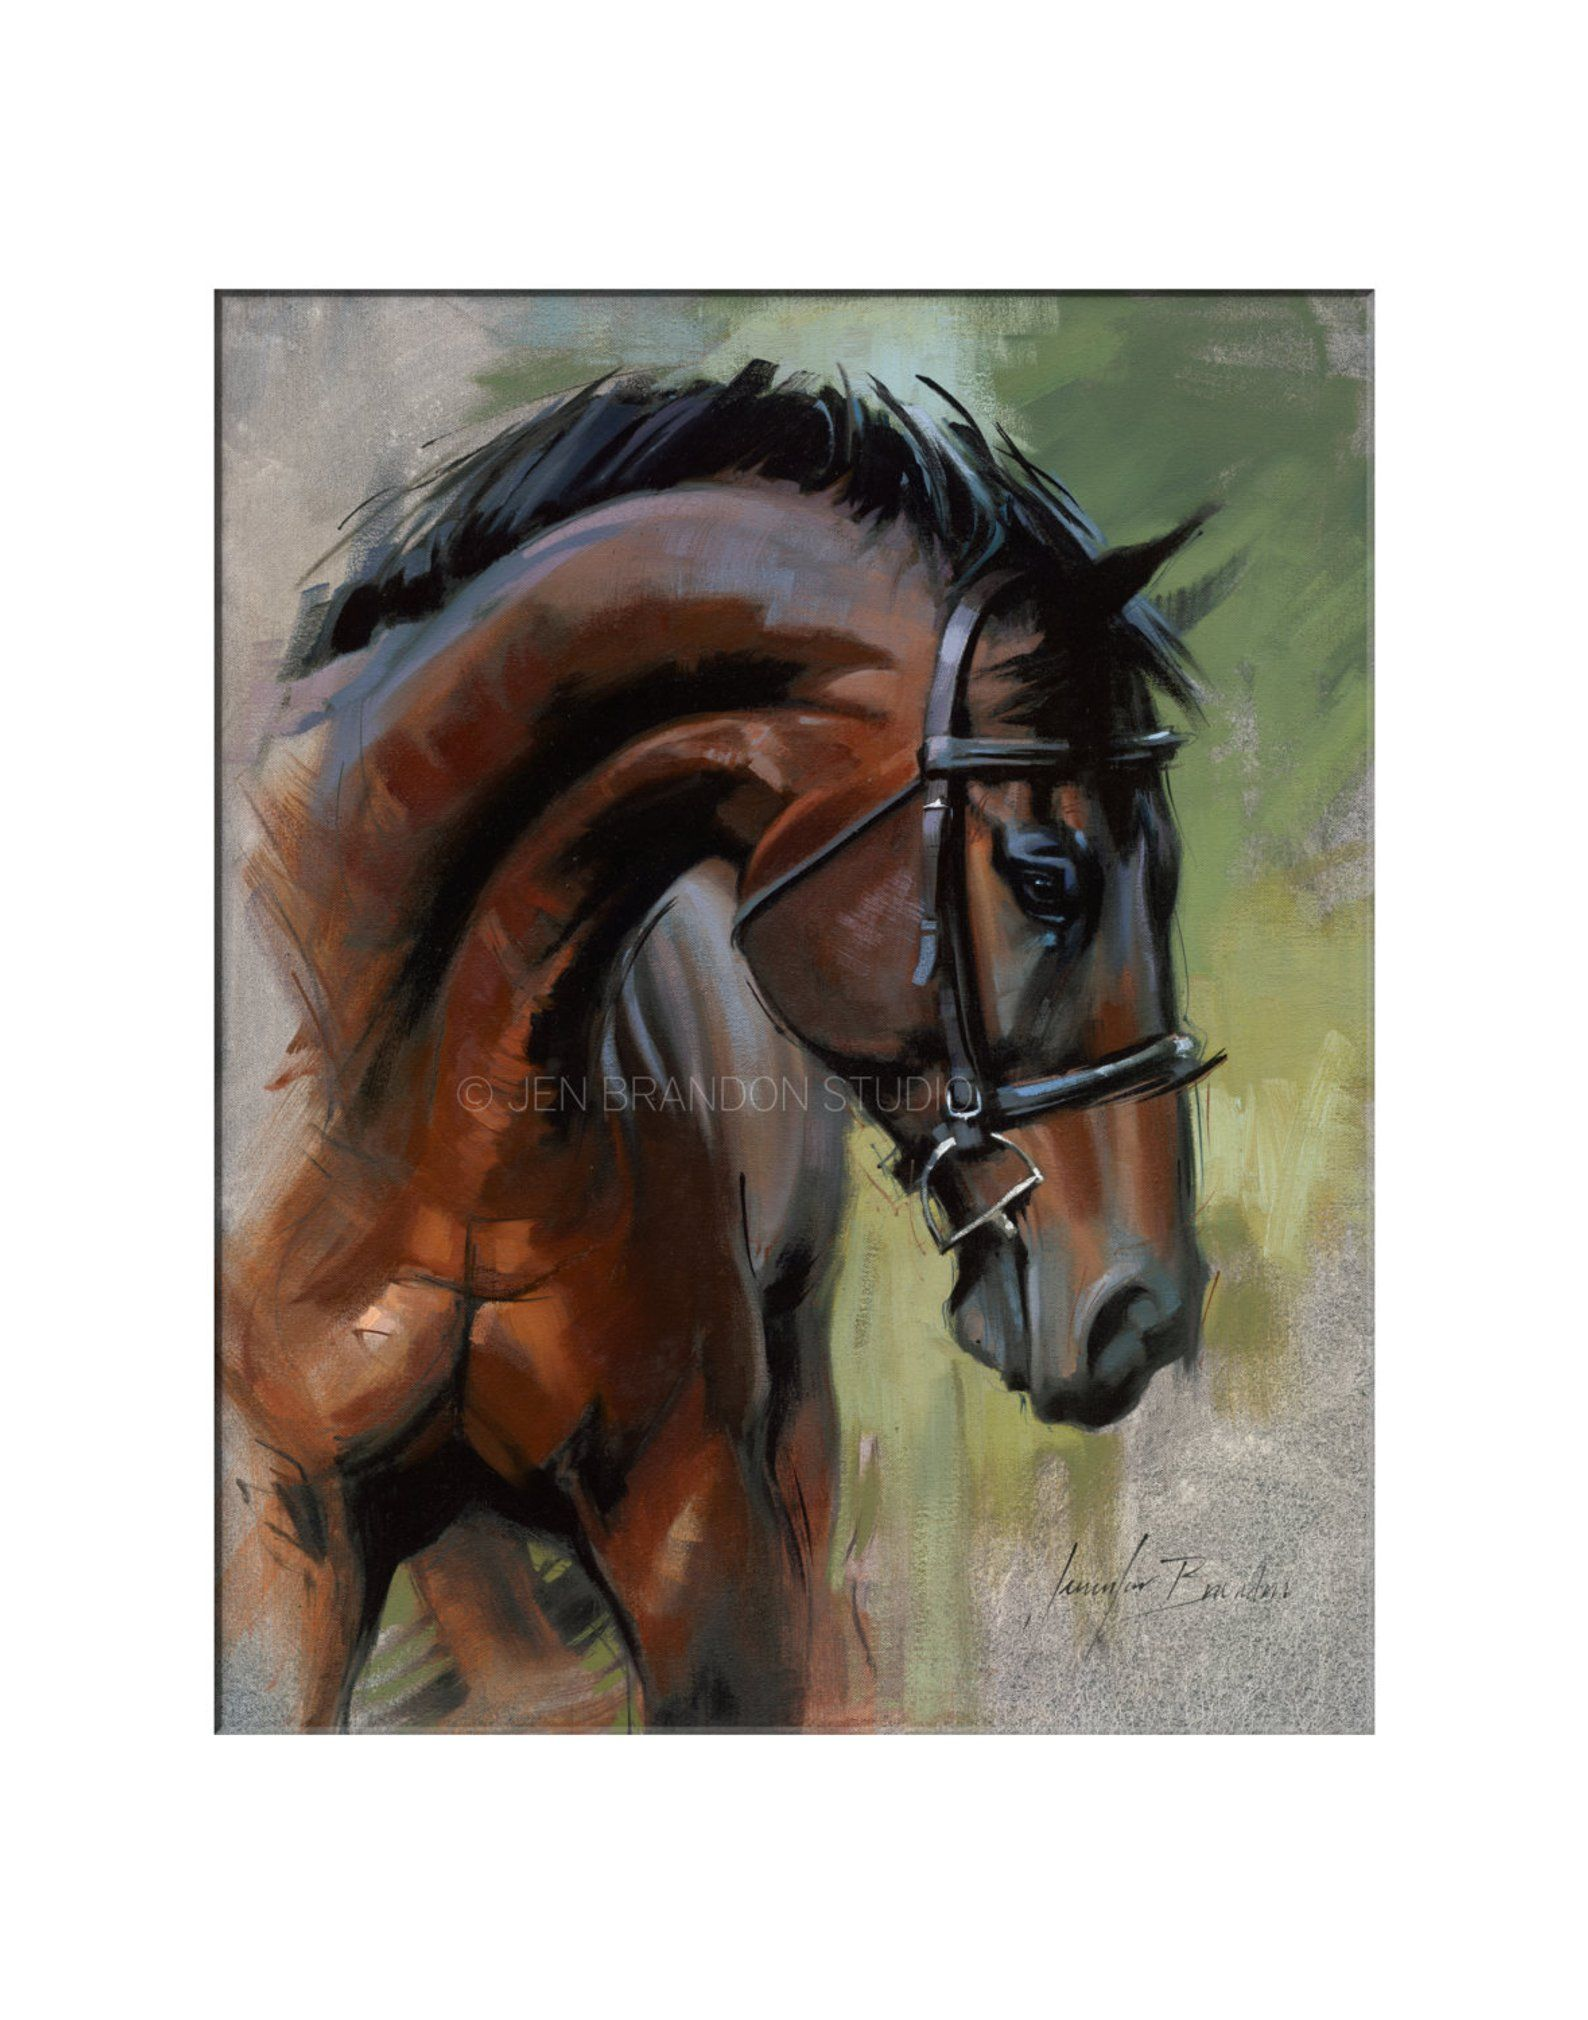 Decoration Murale Cheval Brown Horse Wall Decor Matted Print Horse Portrait Horse Art